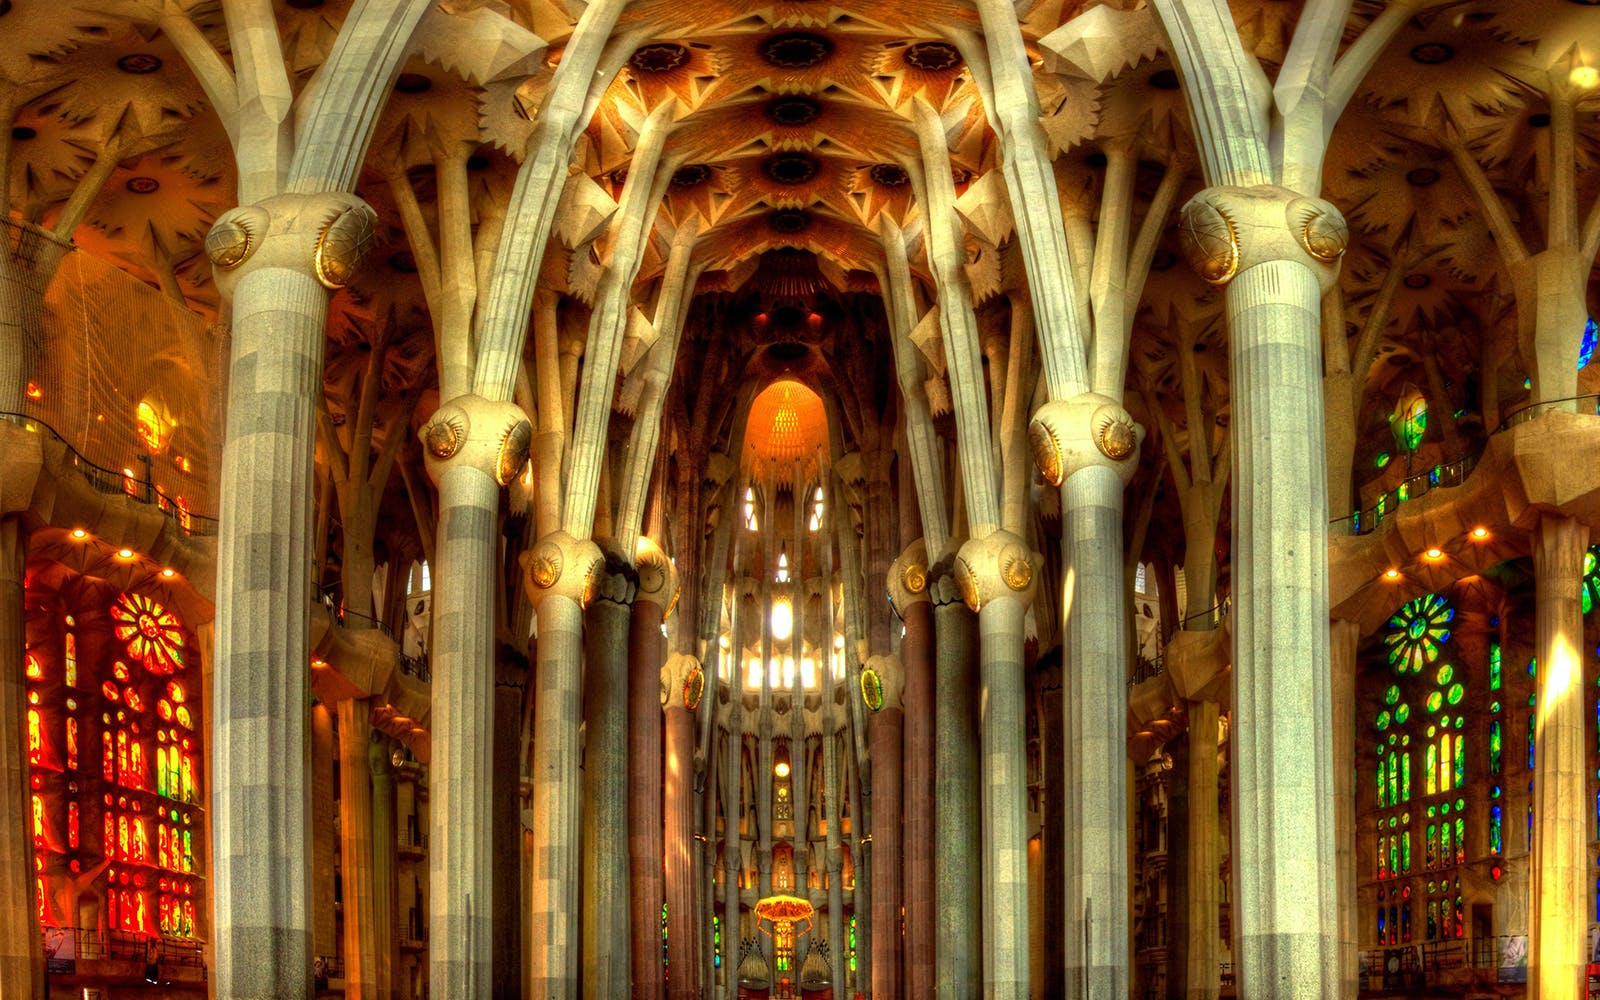 guided tour of sagrada familia with skip the line access-3